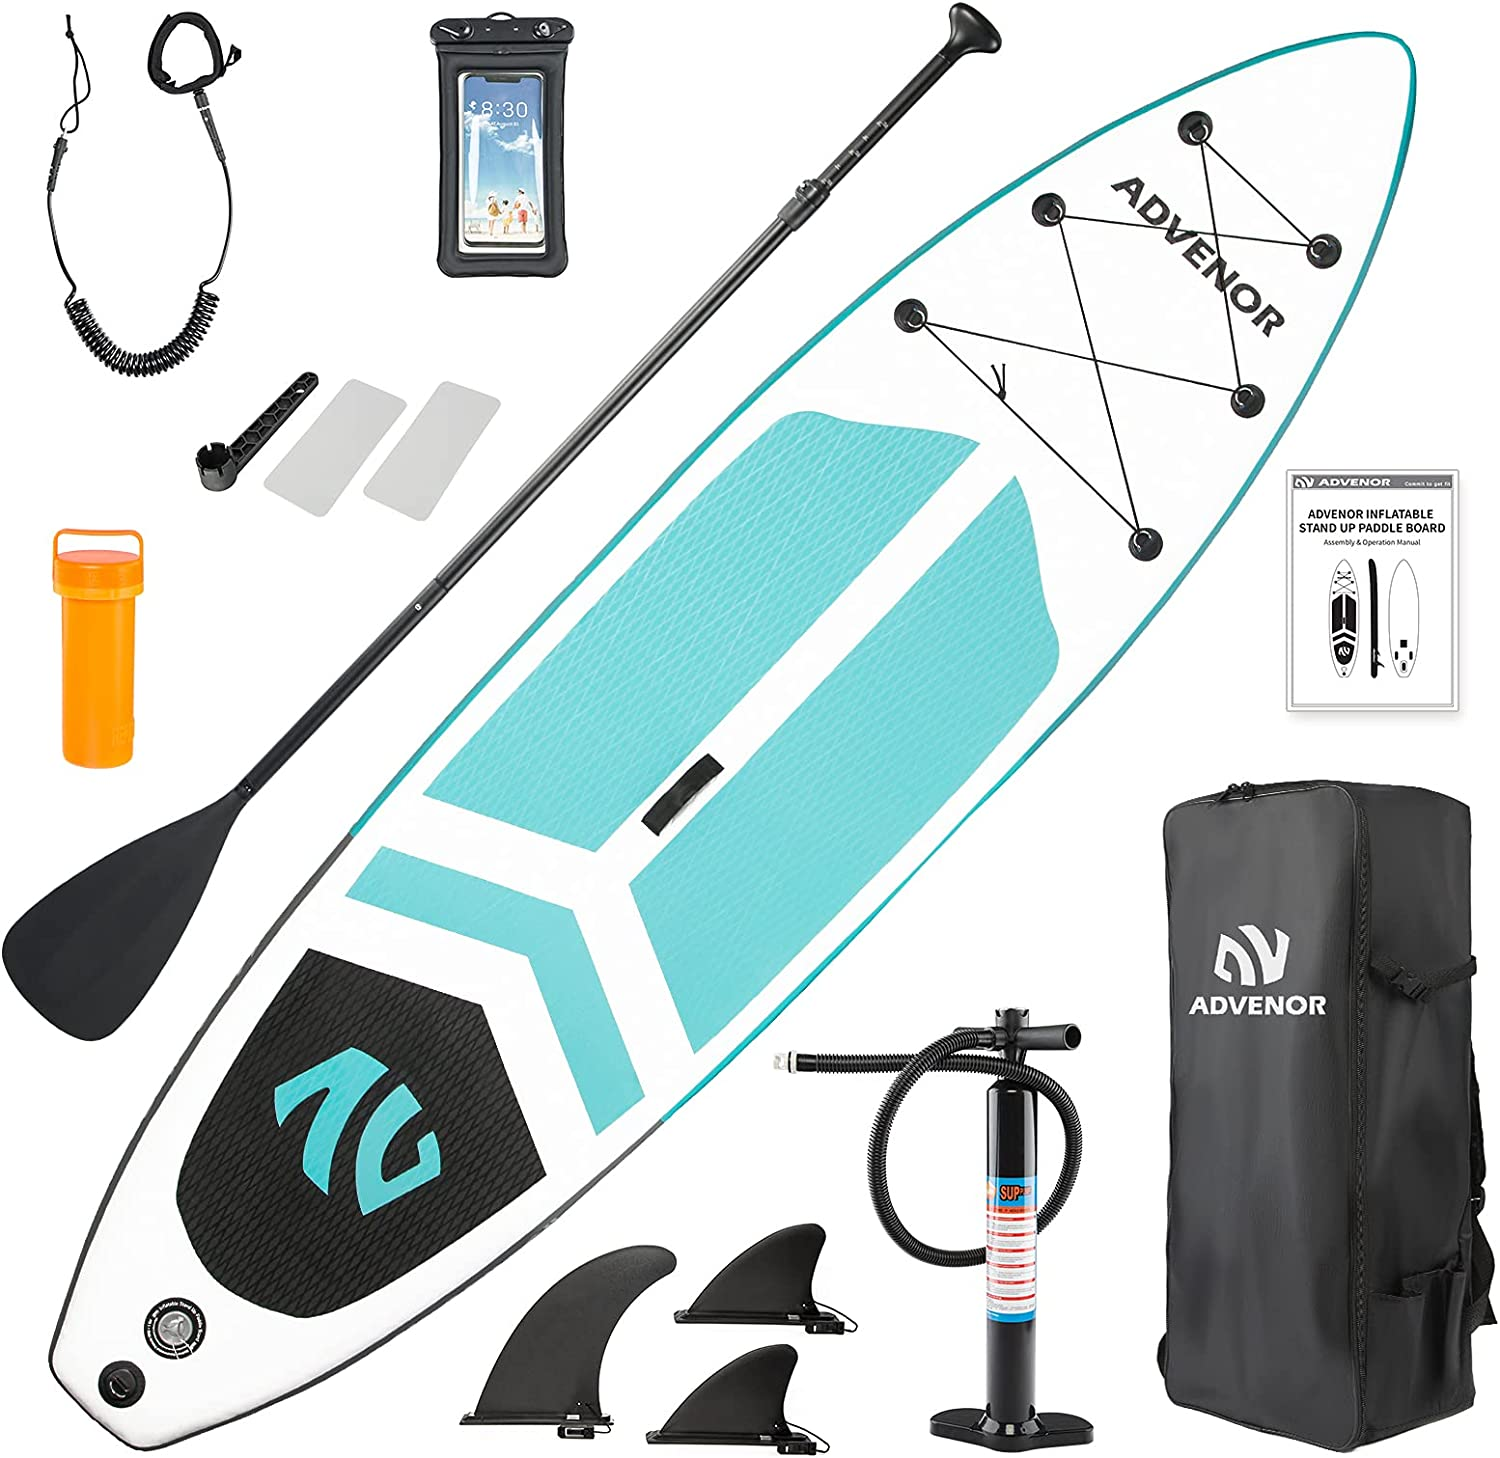 ADVENOR Paddle Board 11'x33 x6 Extra Wide Inflatable Stand Up Paddle Board with SUP Accessories Including Adjustable Paddle,Backpack,Waterproof Bag,Leash,and Hand Pump,Repair Kit